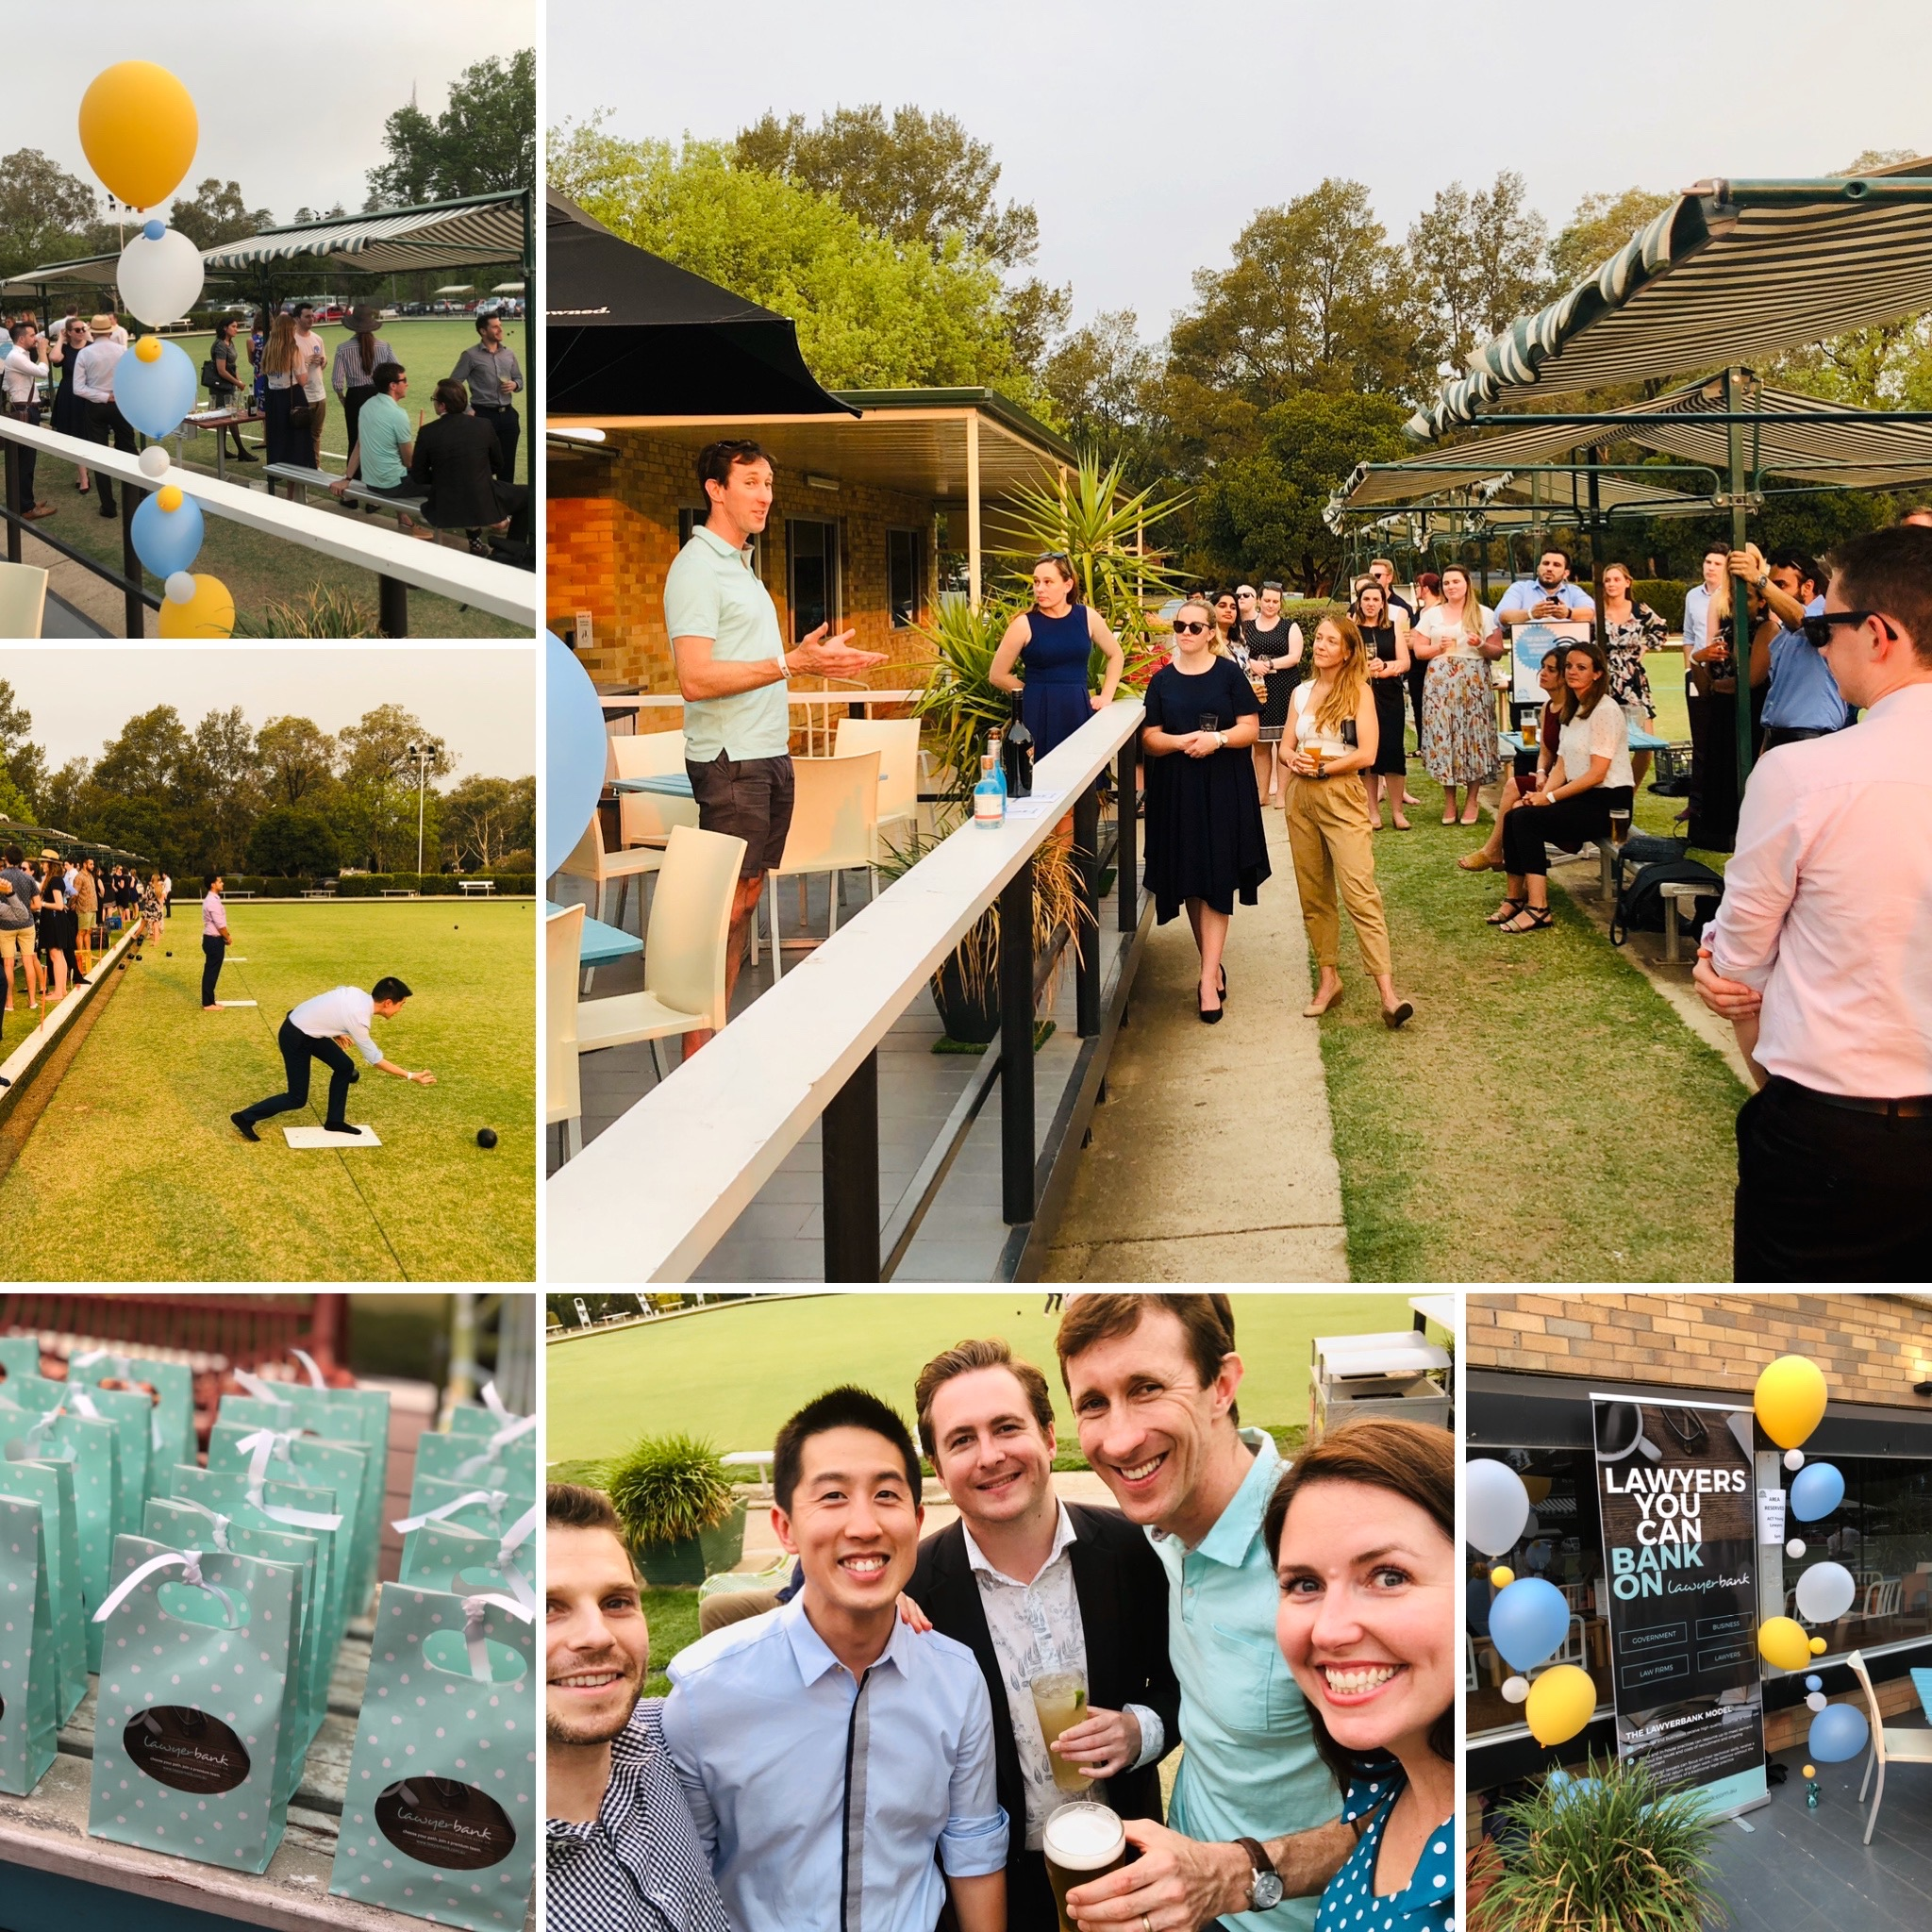 lawyerbank Sponsors the ACT Young Lawyers Lawn Bowls evening